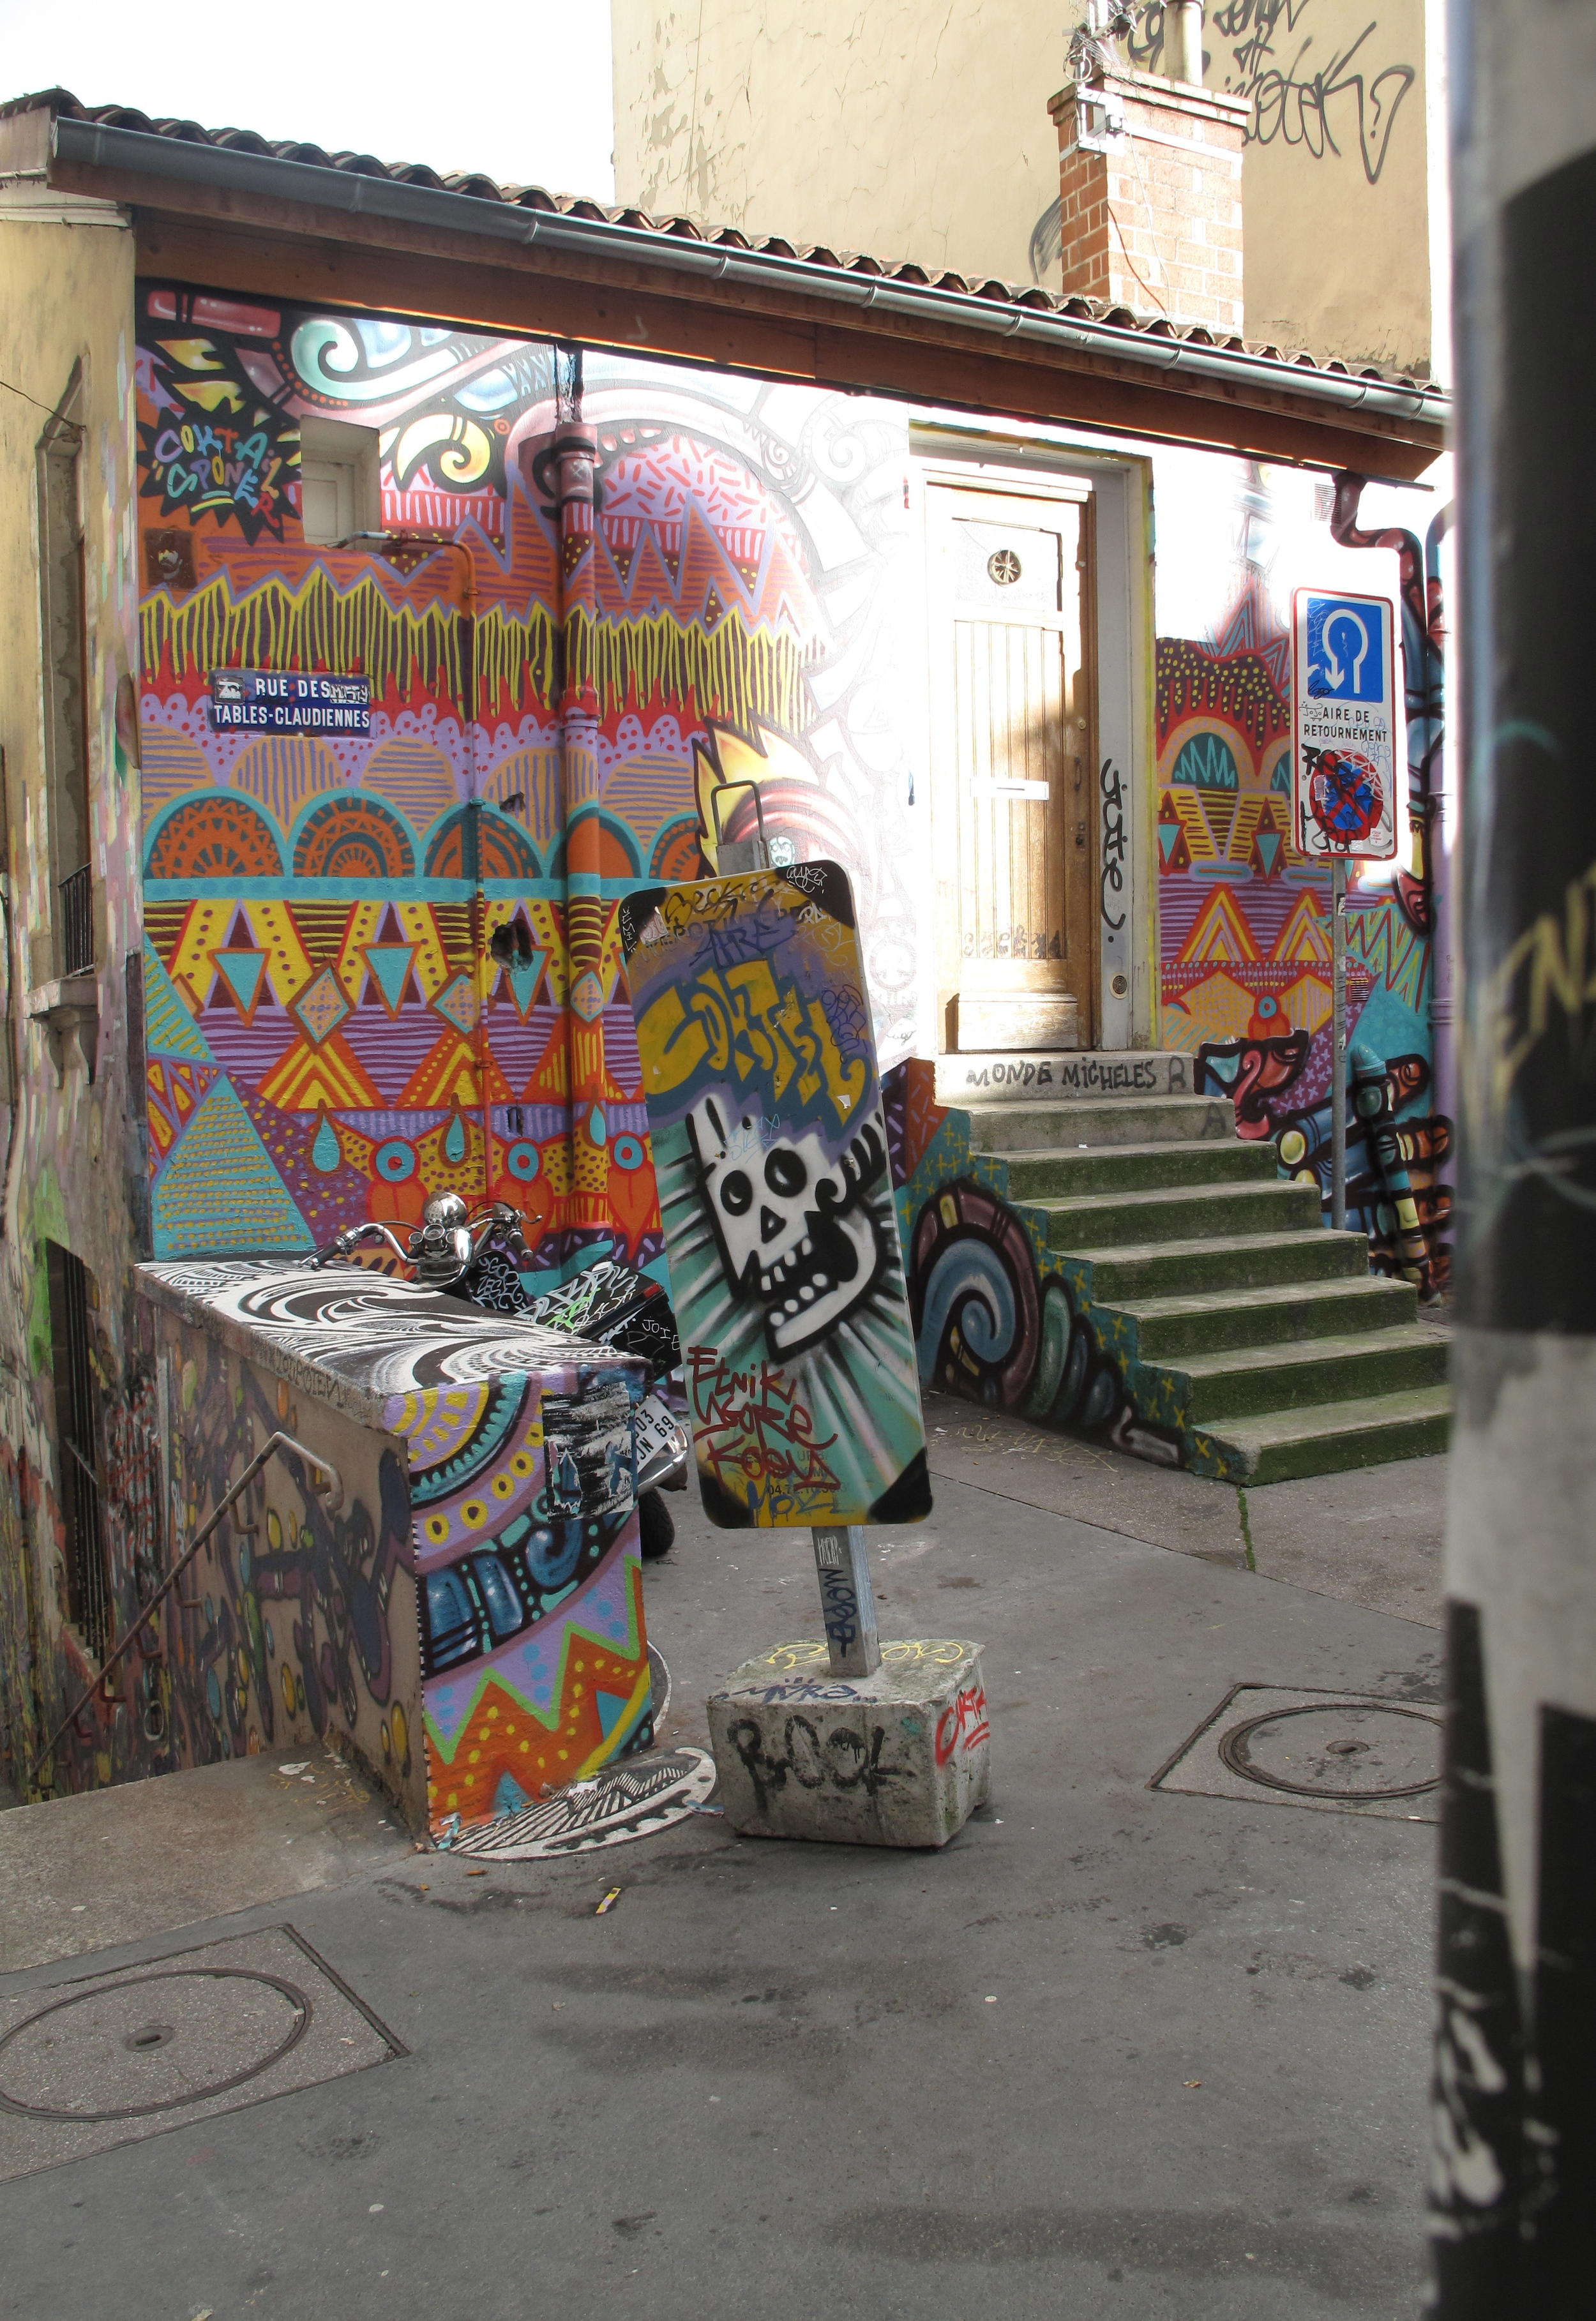 Colourful graffiti covering a whole house in the Croix Rousse, Lyon